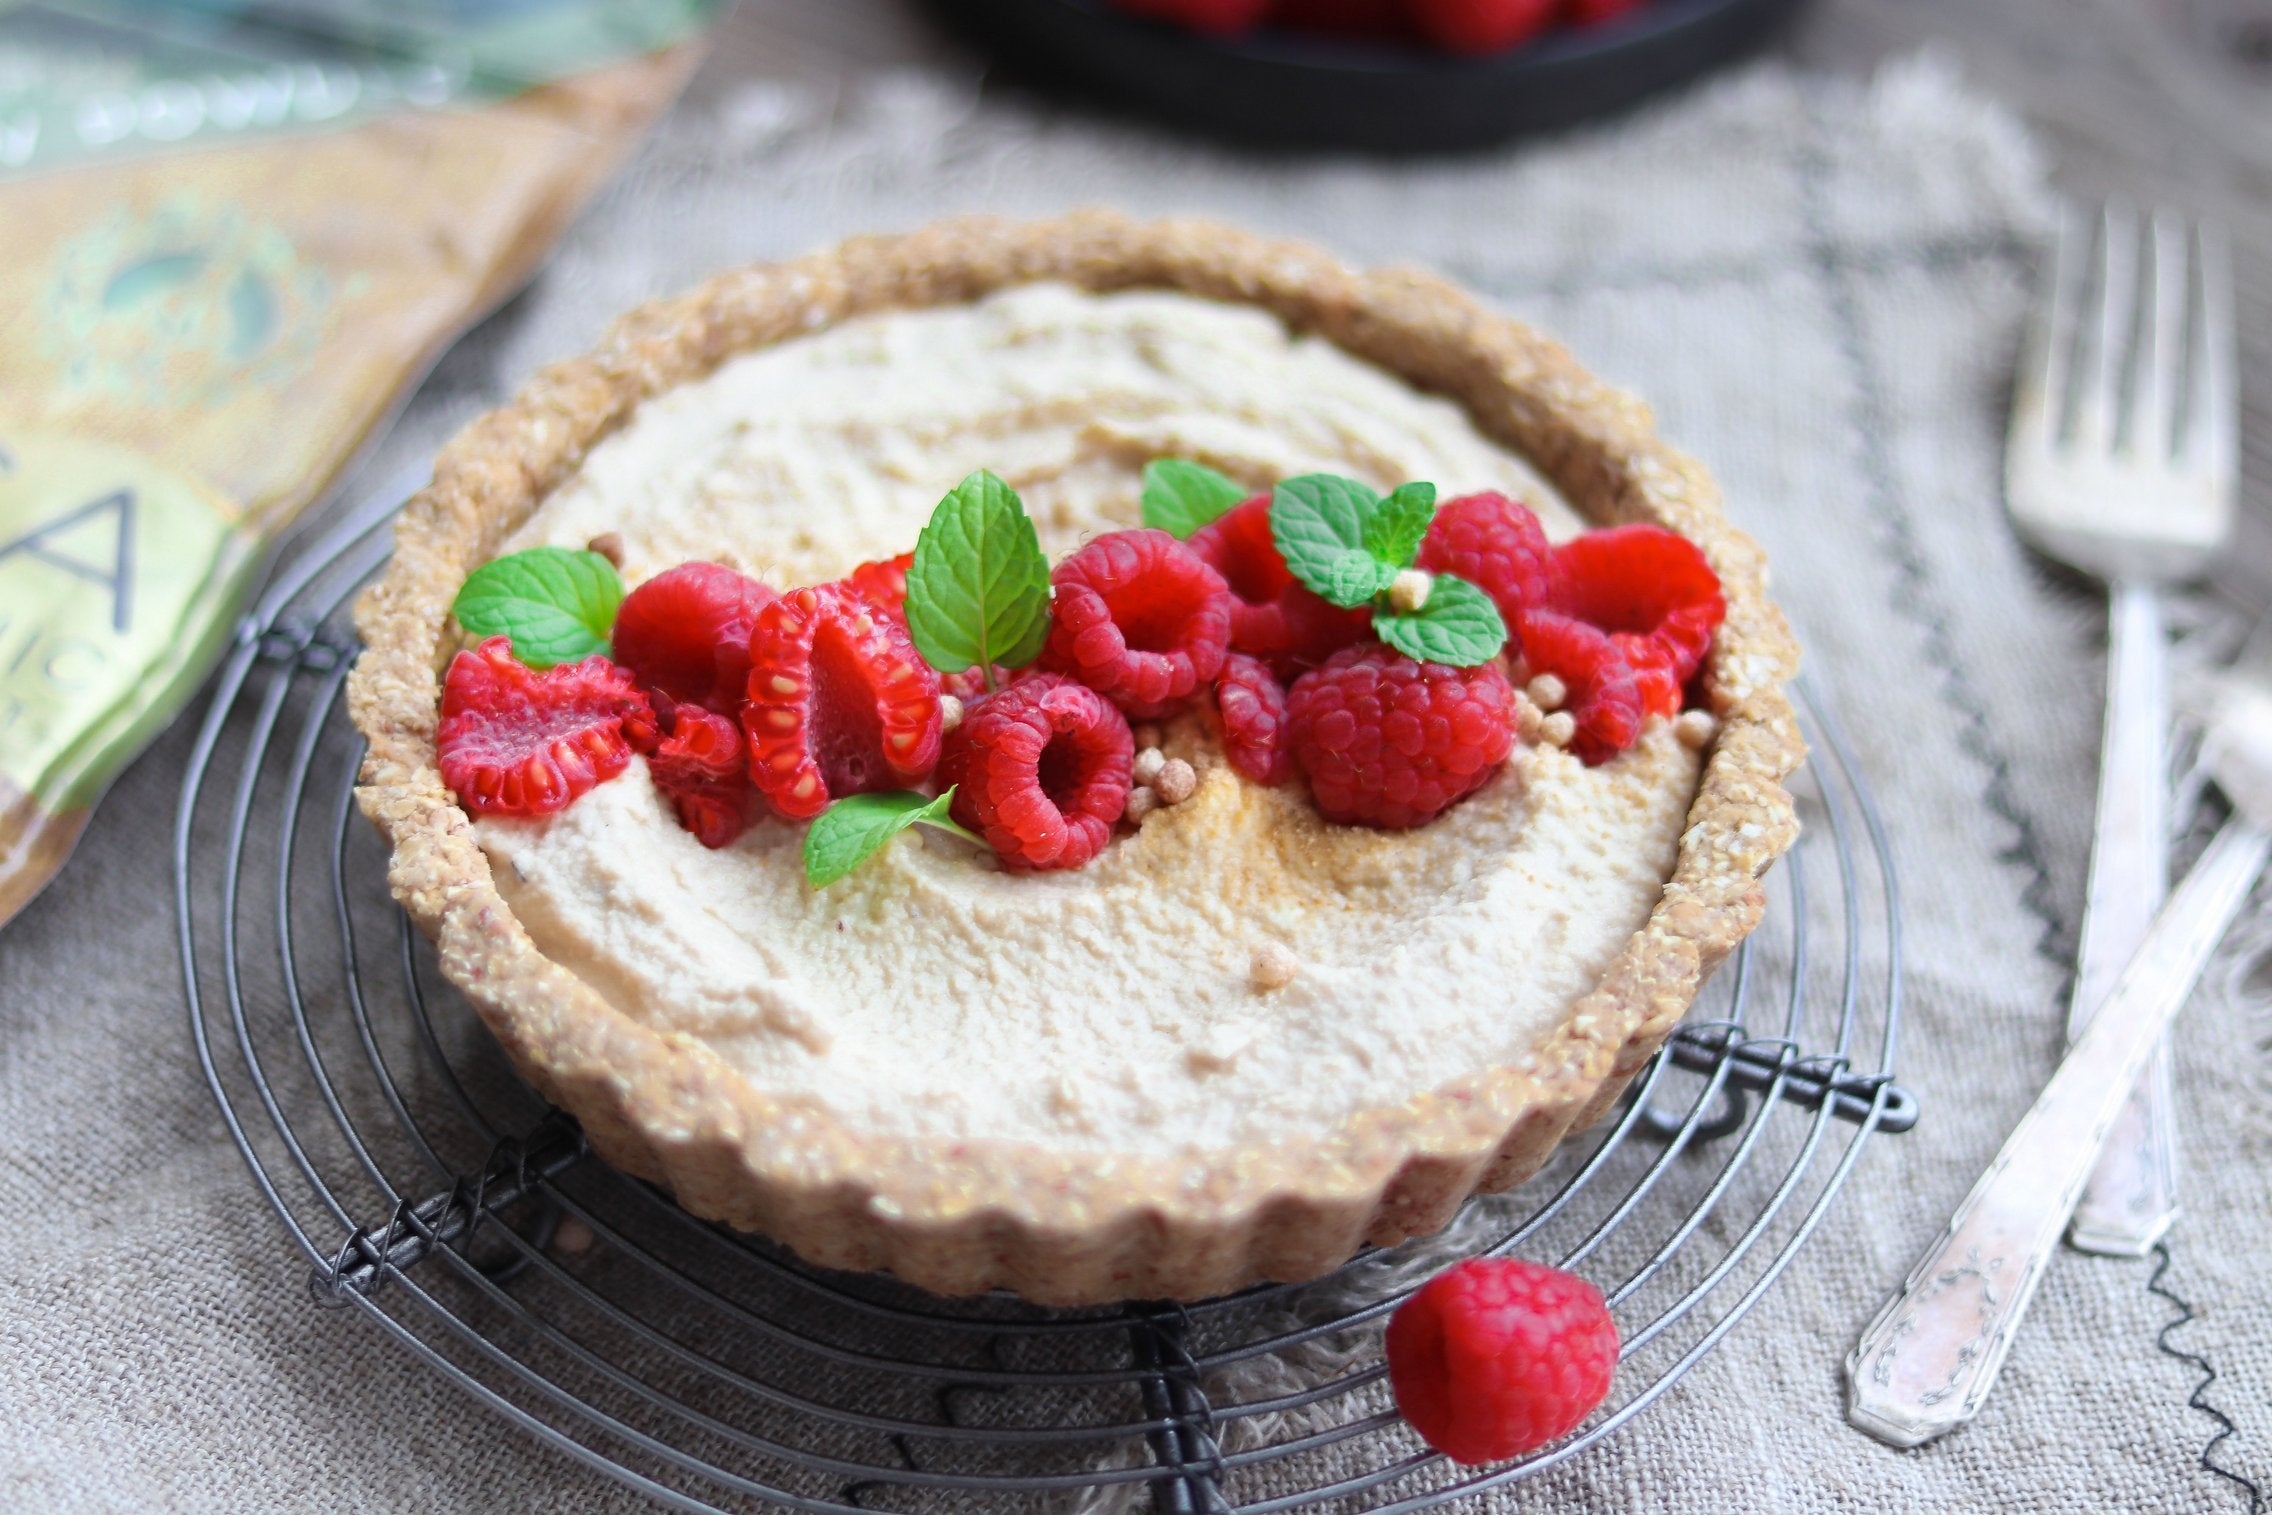 Vegan Maca Cream Cheese Tart with Almonds and Cashews